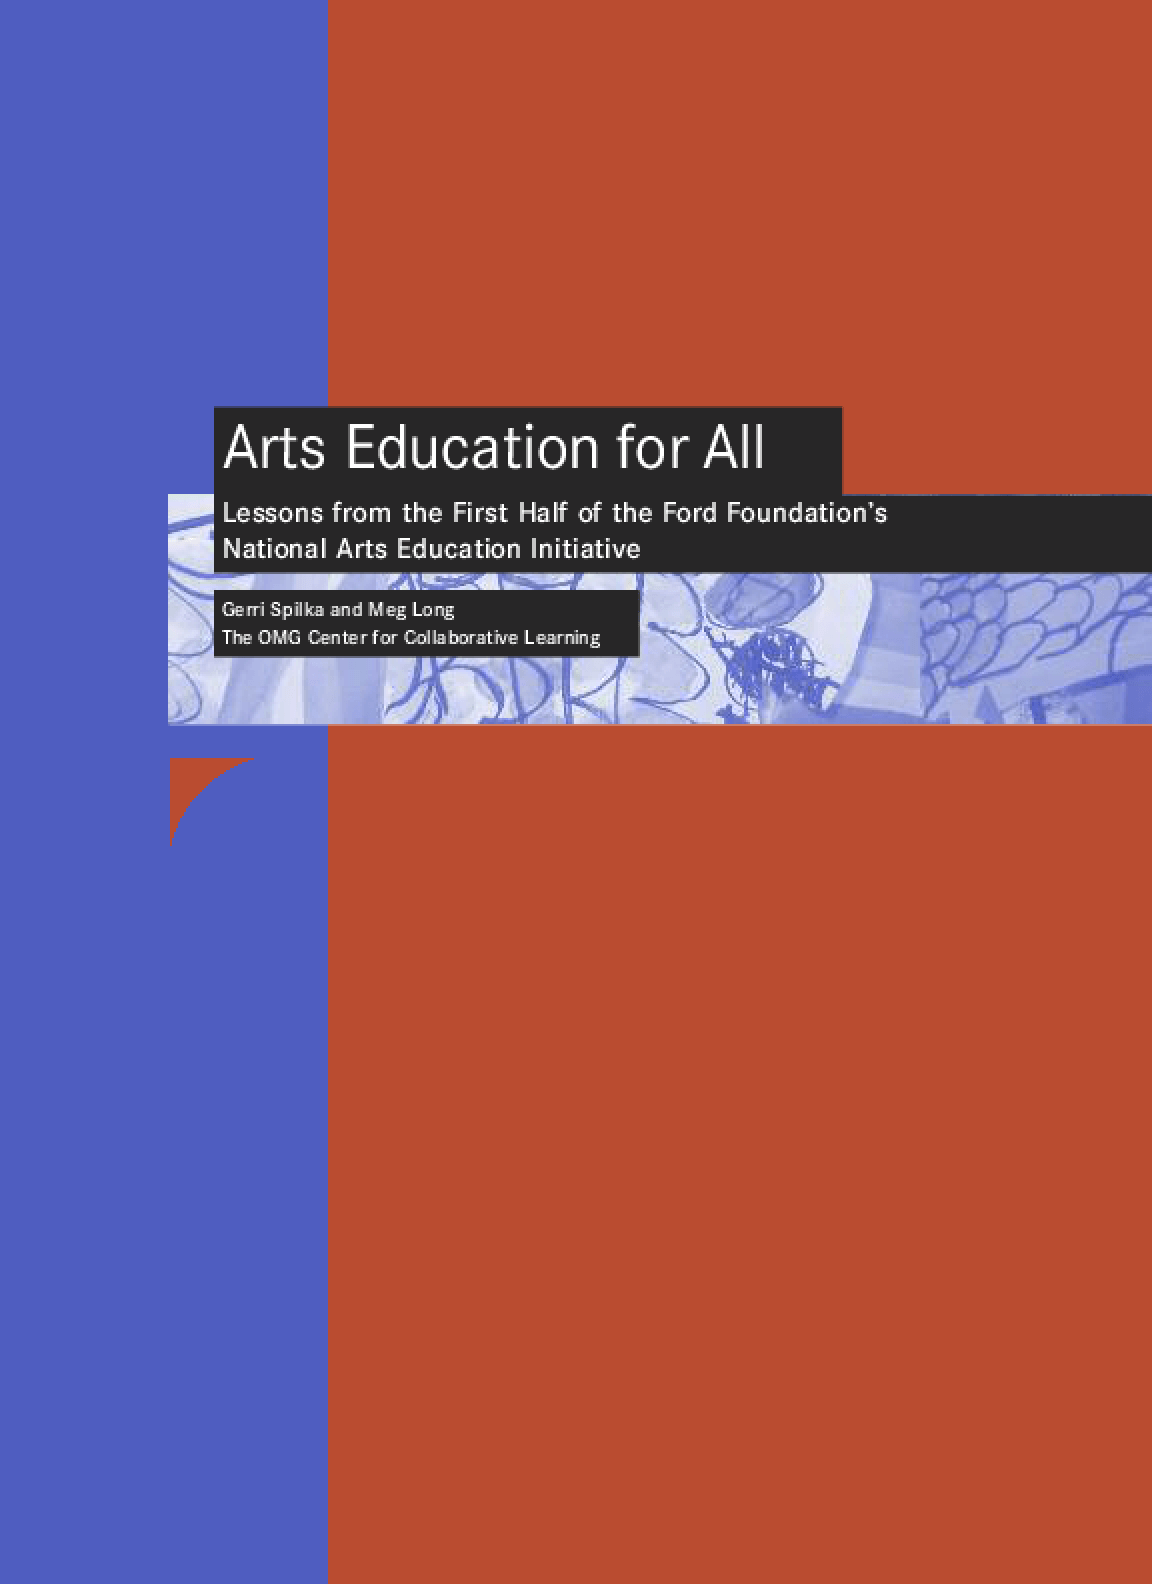 Arts Education for All: Lessons From the First Half of the Ford Foundation's National Arts Education Initiative